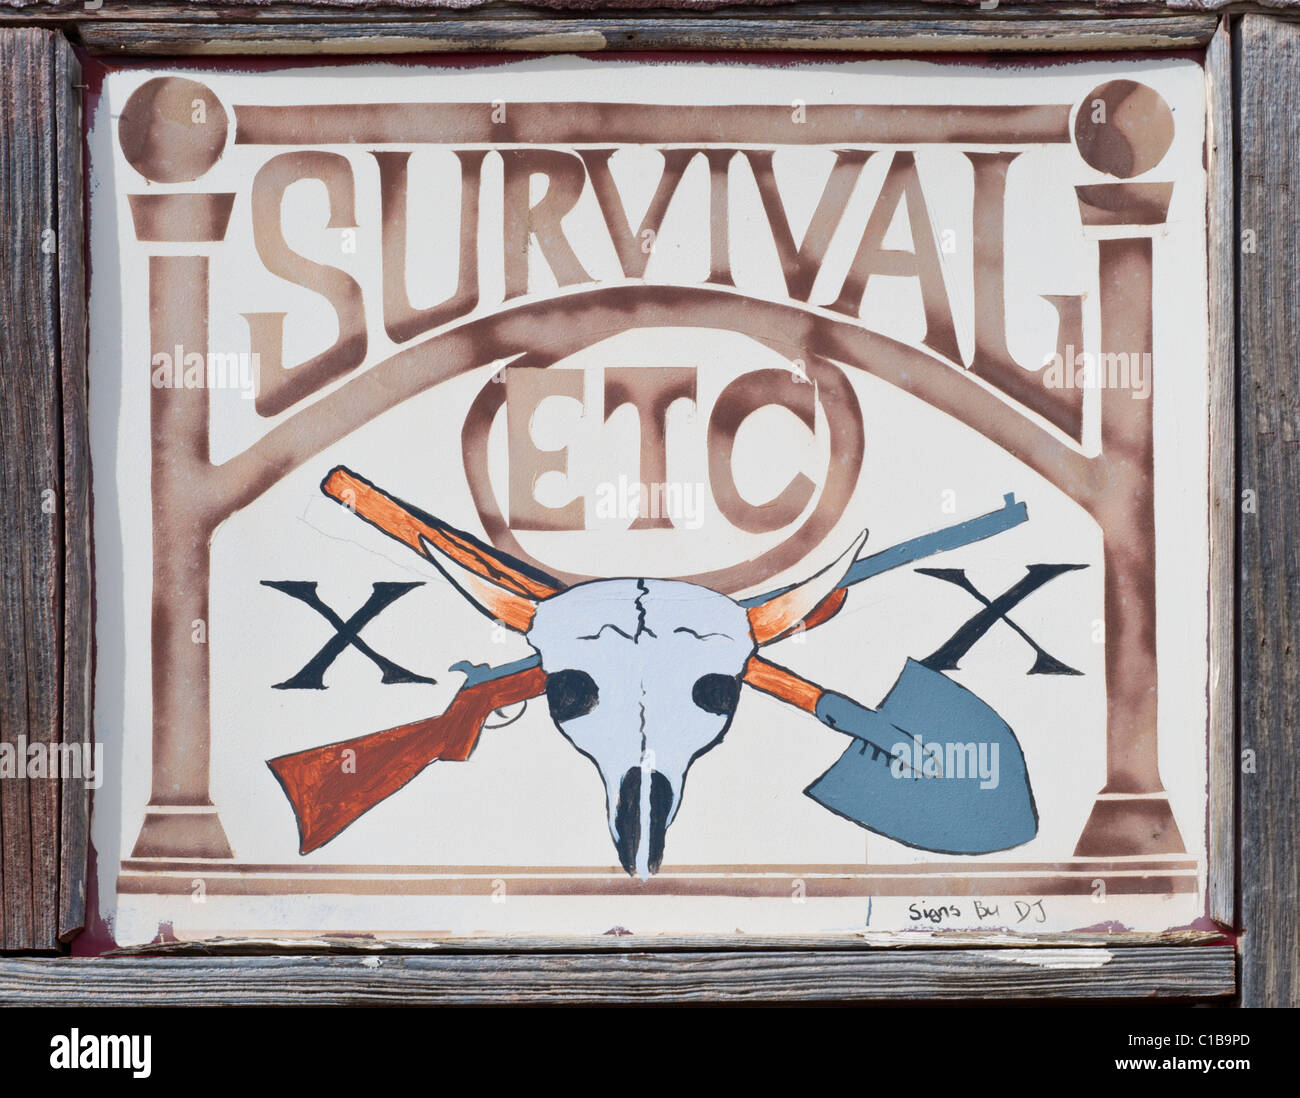 Survival etc. store in Mountainair, New Mexico. - Stock Image